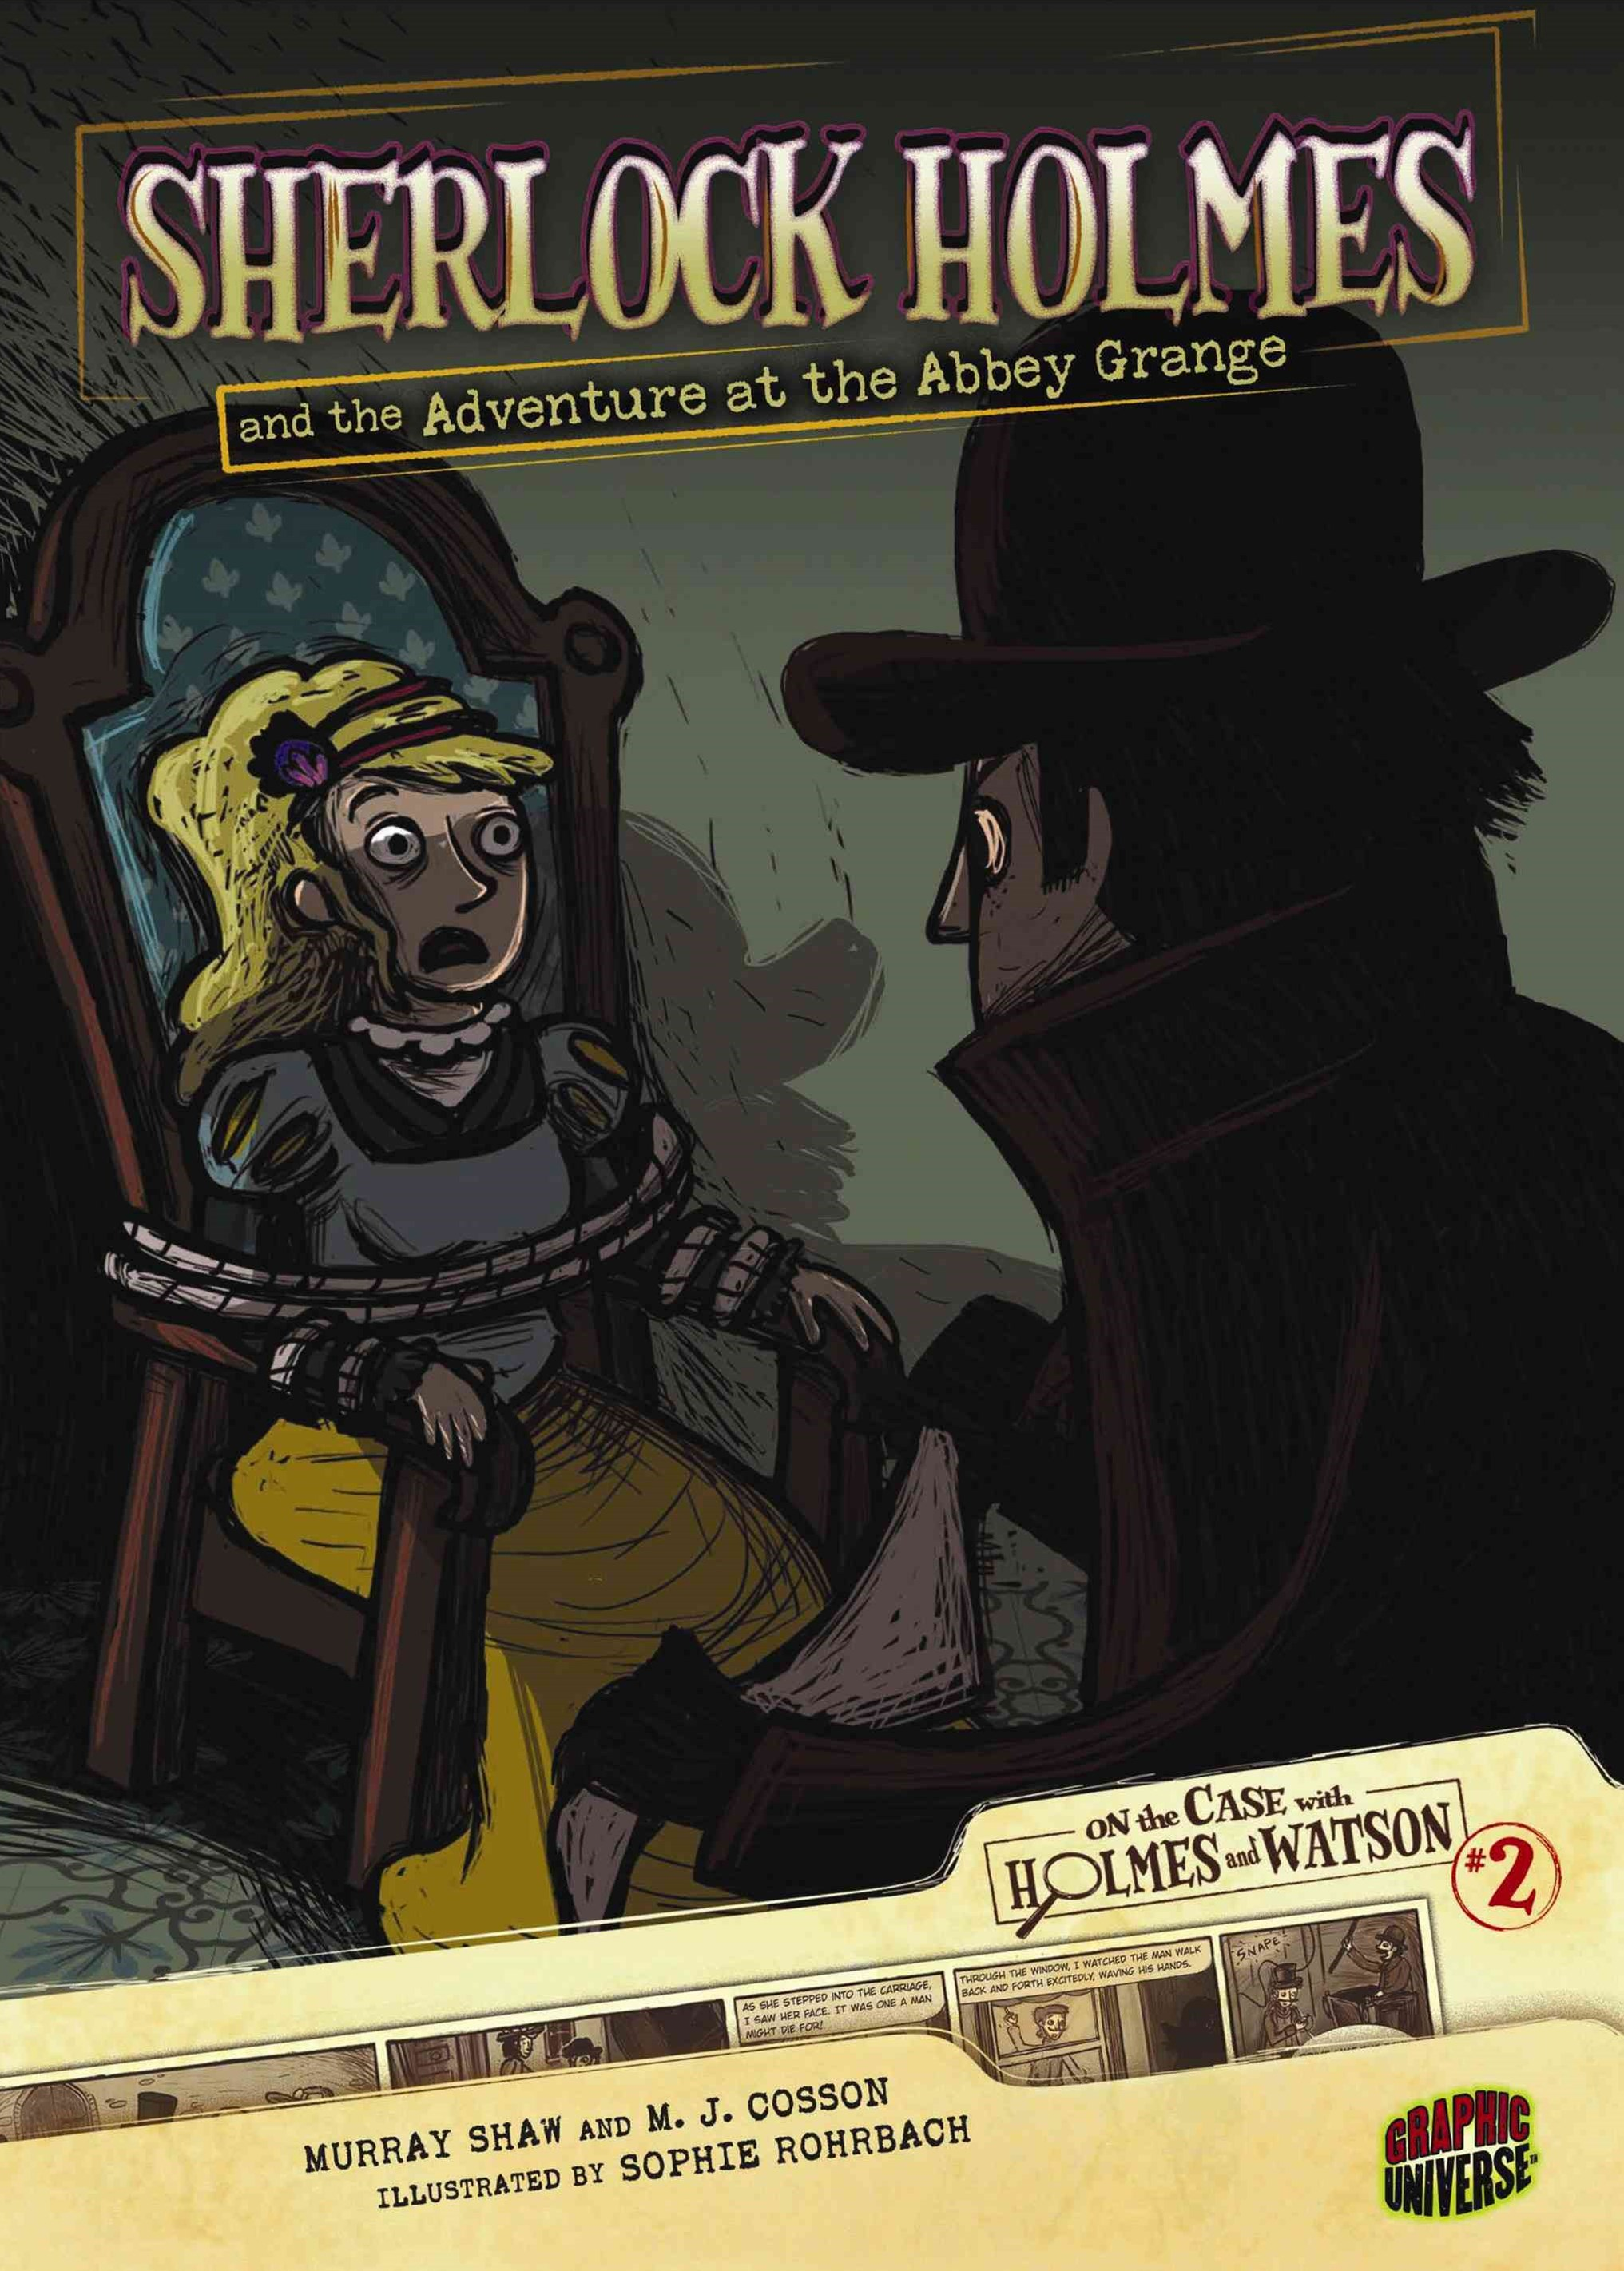 Sherlock Holmes And The Adventure At The Abbey Grange #2